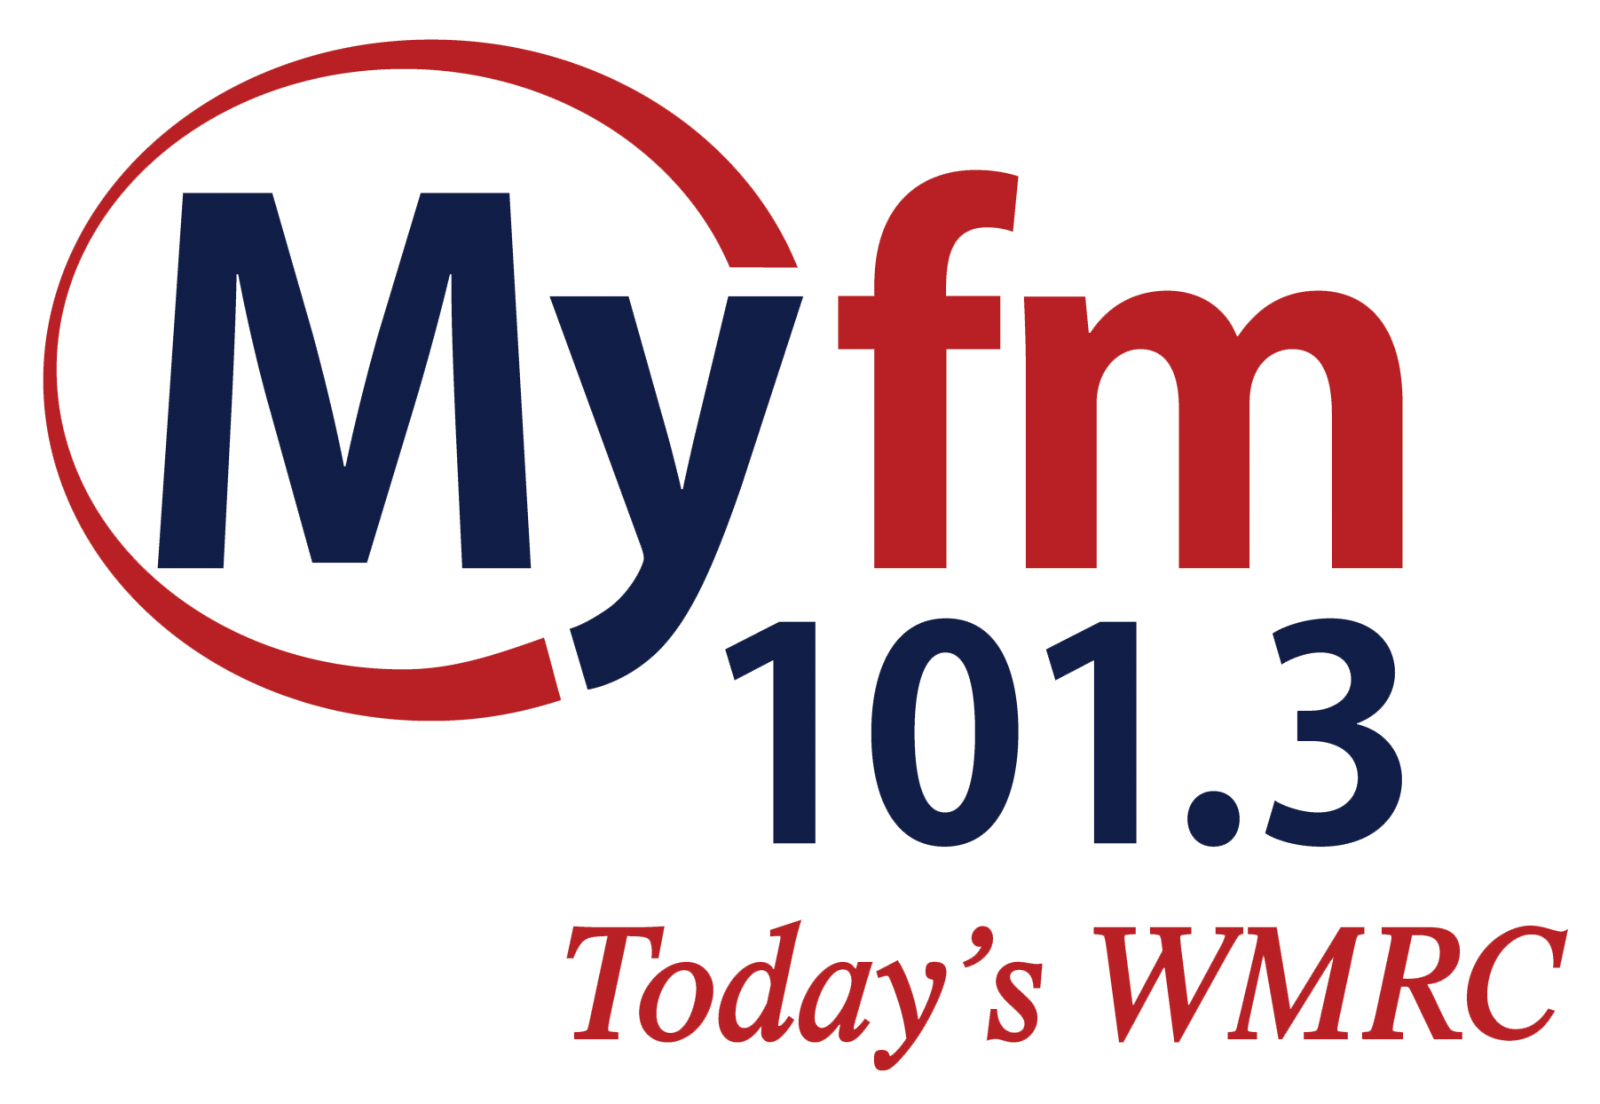 File:WMRC (MyFM 101.3) Logo (As Of January 2017).png.